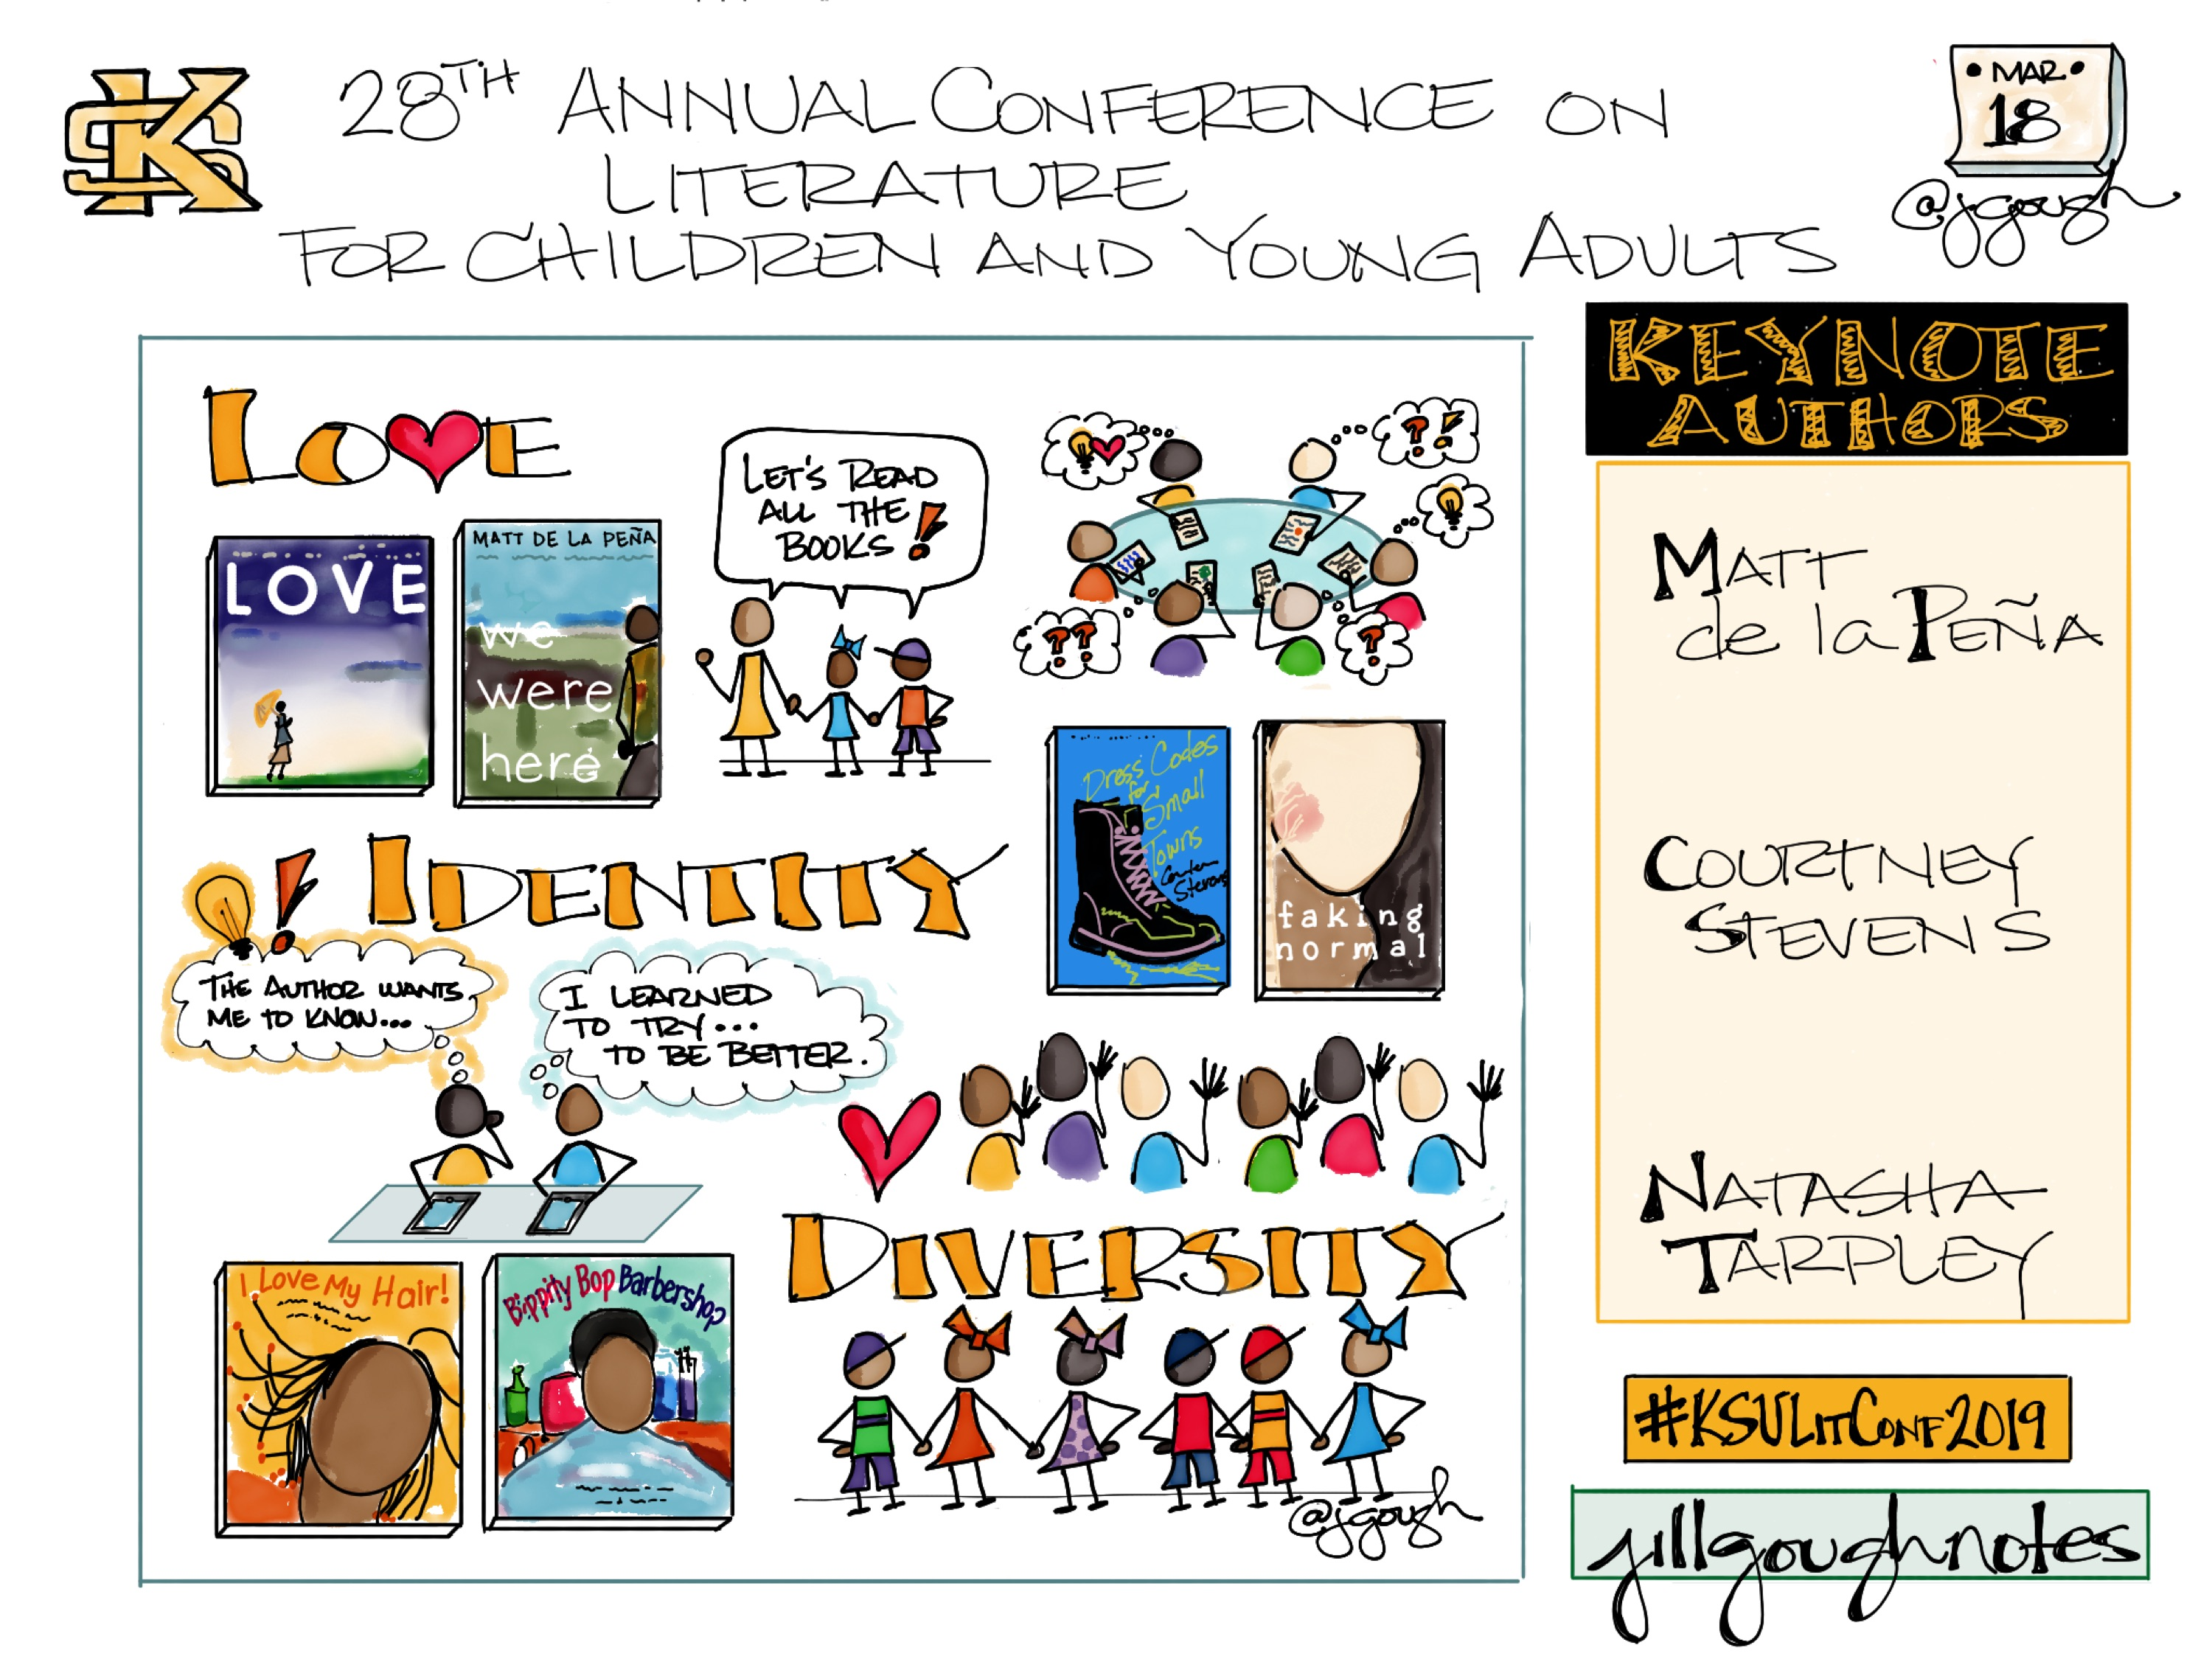 Sharing my #Sketchnotes for the opening of @KennesawState 28th Annual Conference on Literature for Children and Young Adults with keynotes from @MattdelaPena @Quartland @NatashaTarpley #KSULitConf2019